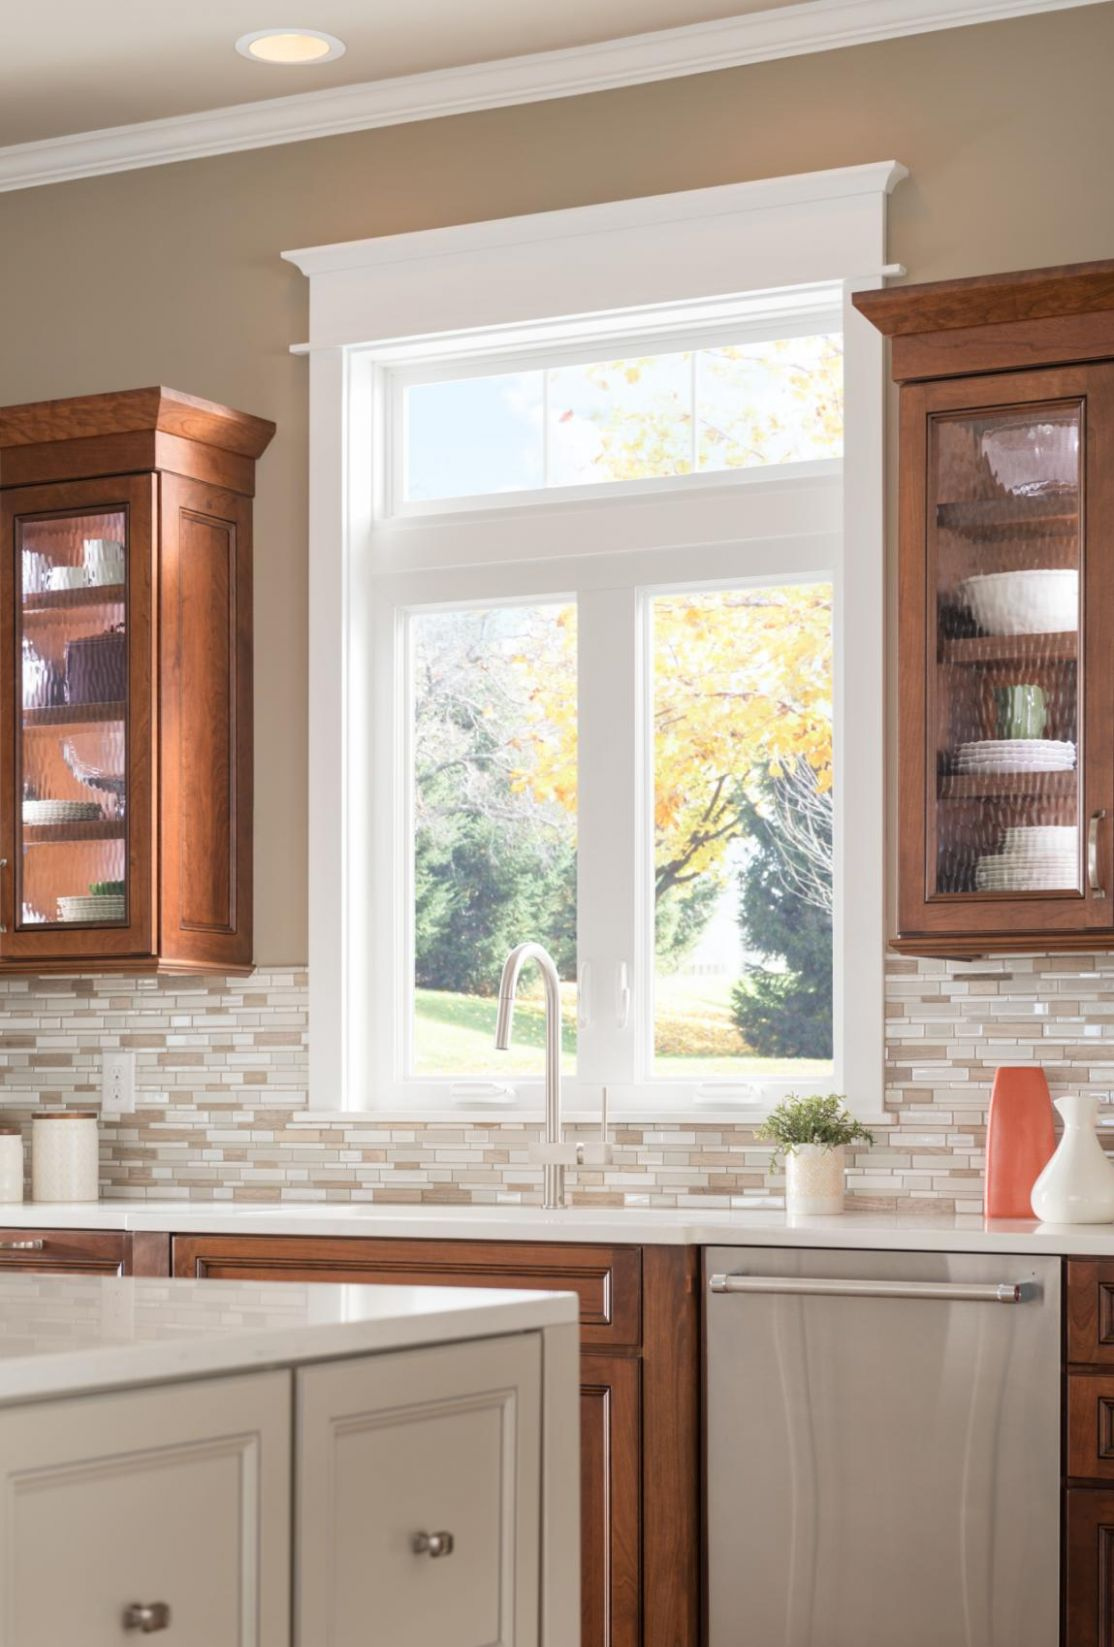 Building a New Home? You Need New Construction Windows - window ideas for new construction